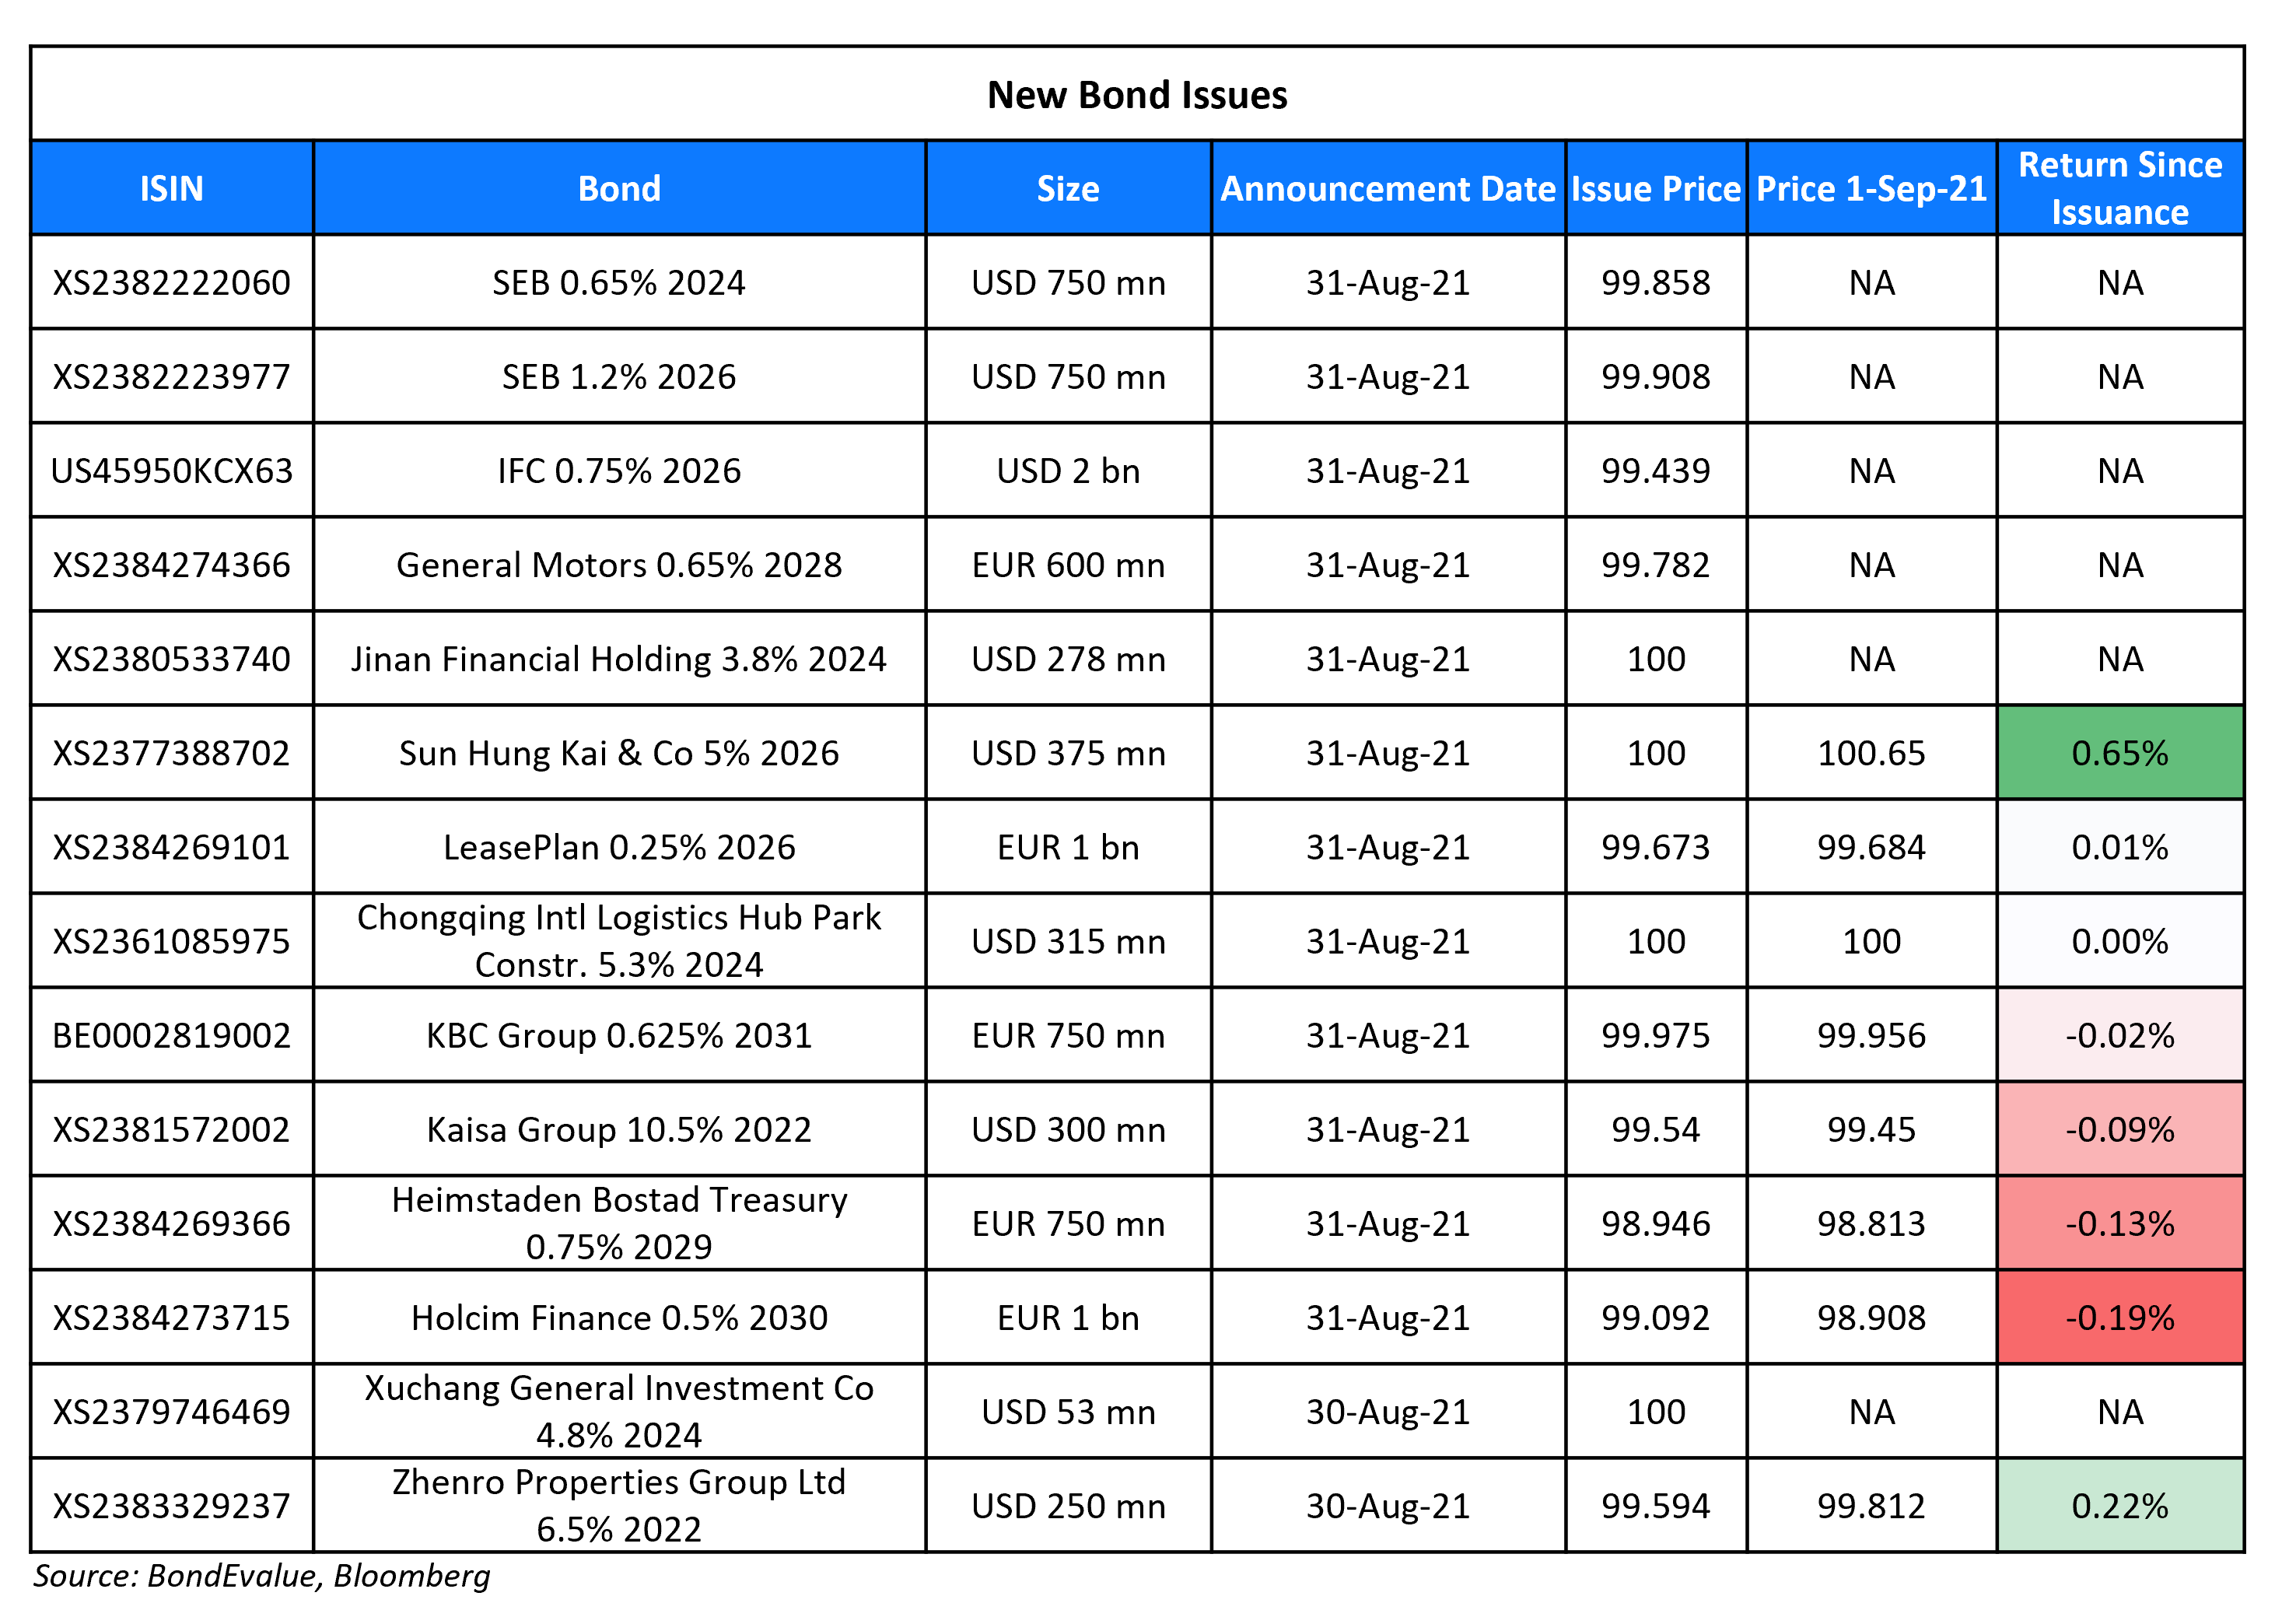 New Bond Issues 1 Sep